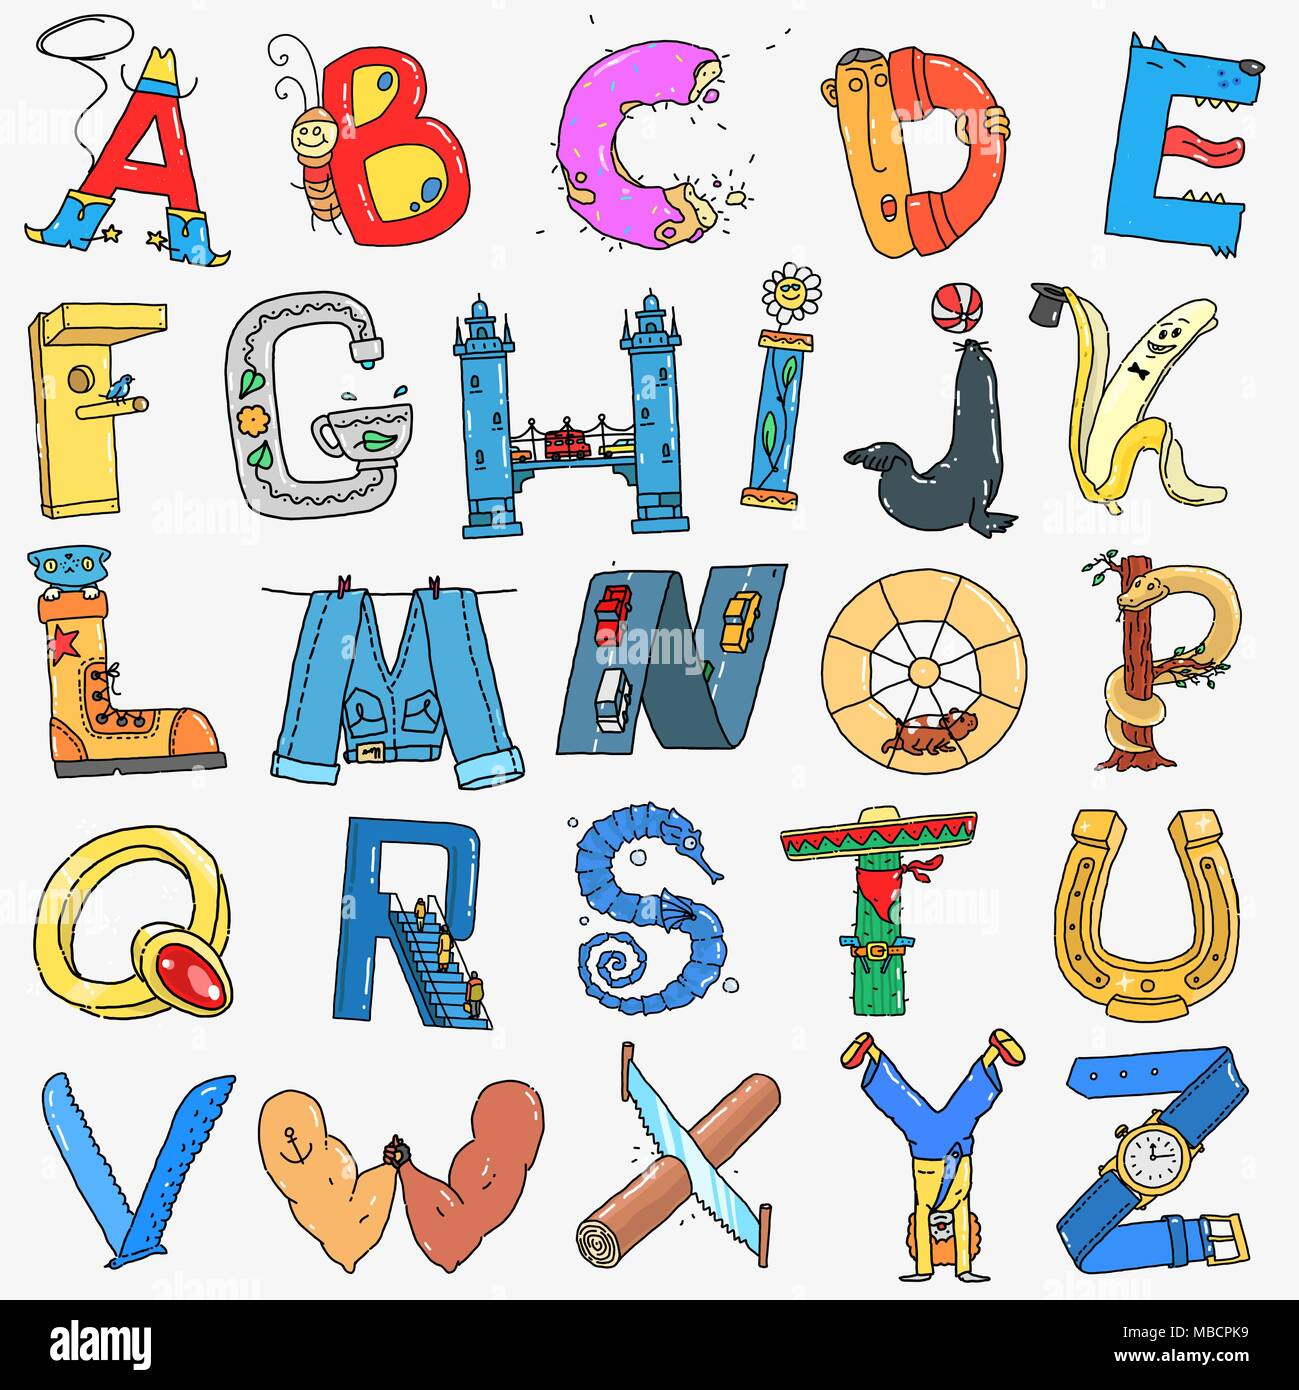 vector english alphabet cartoon style stock vector image art alamy https www alamy com vector english alphabet cartoon style image179146109 html